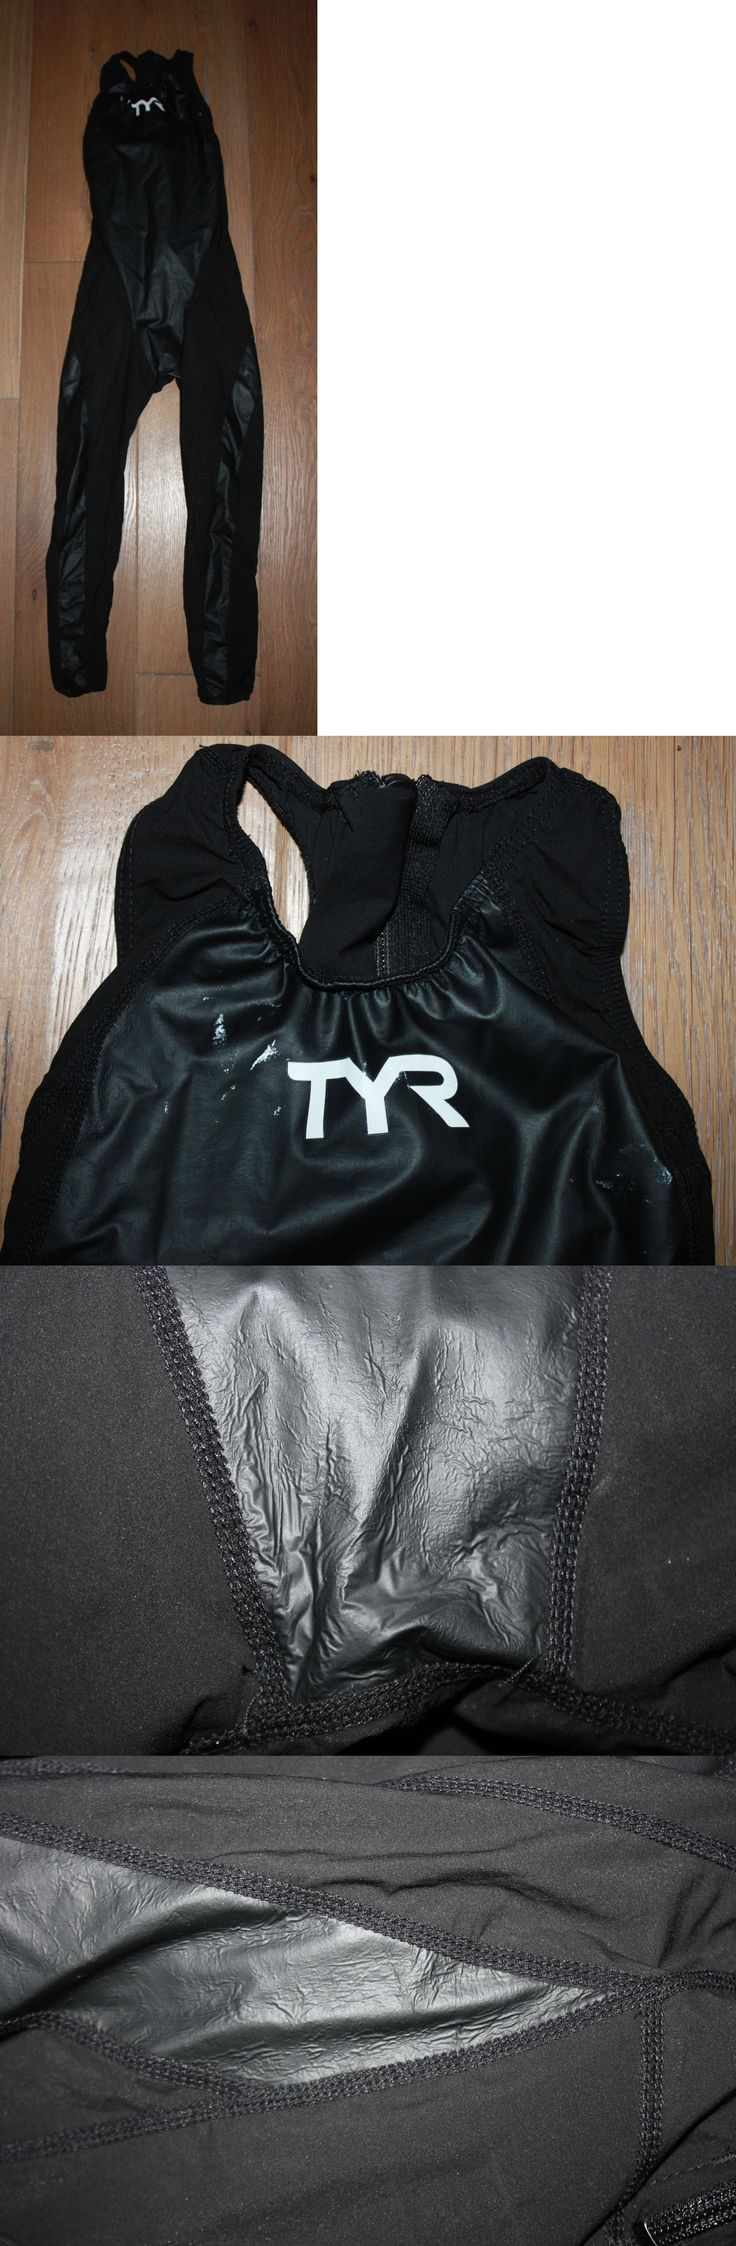 Women 140051: New Tyr Womens Black Tracer Rise Full Body Zipper Back Tri Suit - Usa Made - 26L -> BUY IT NOW ONLY: $49.95 on eBay!